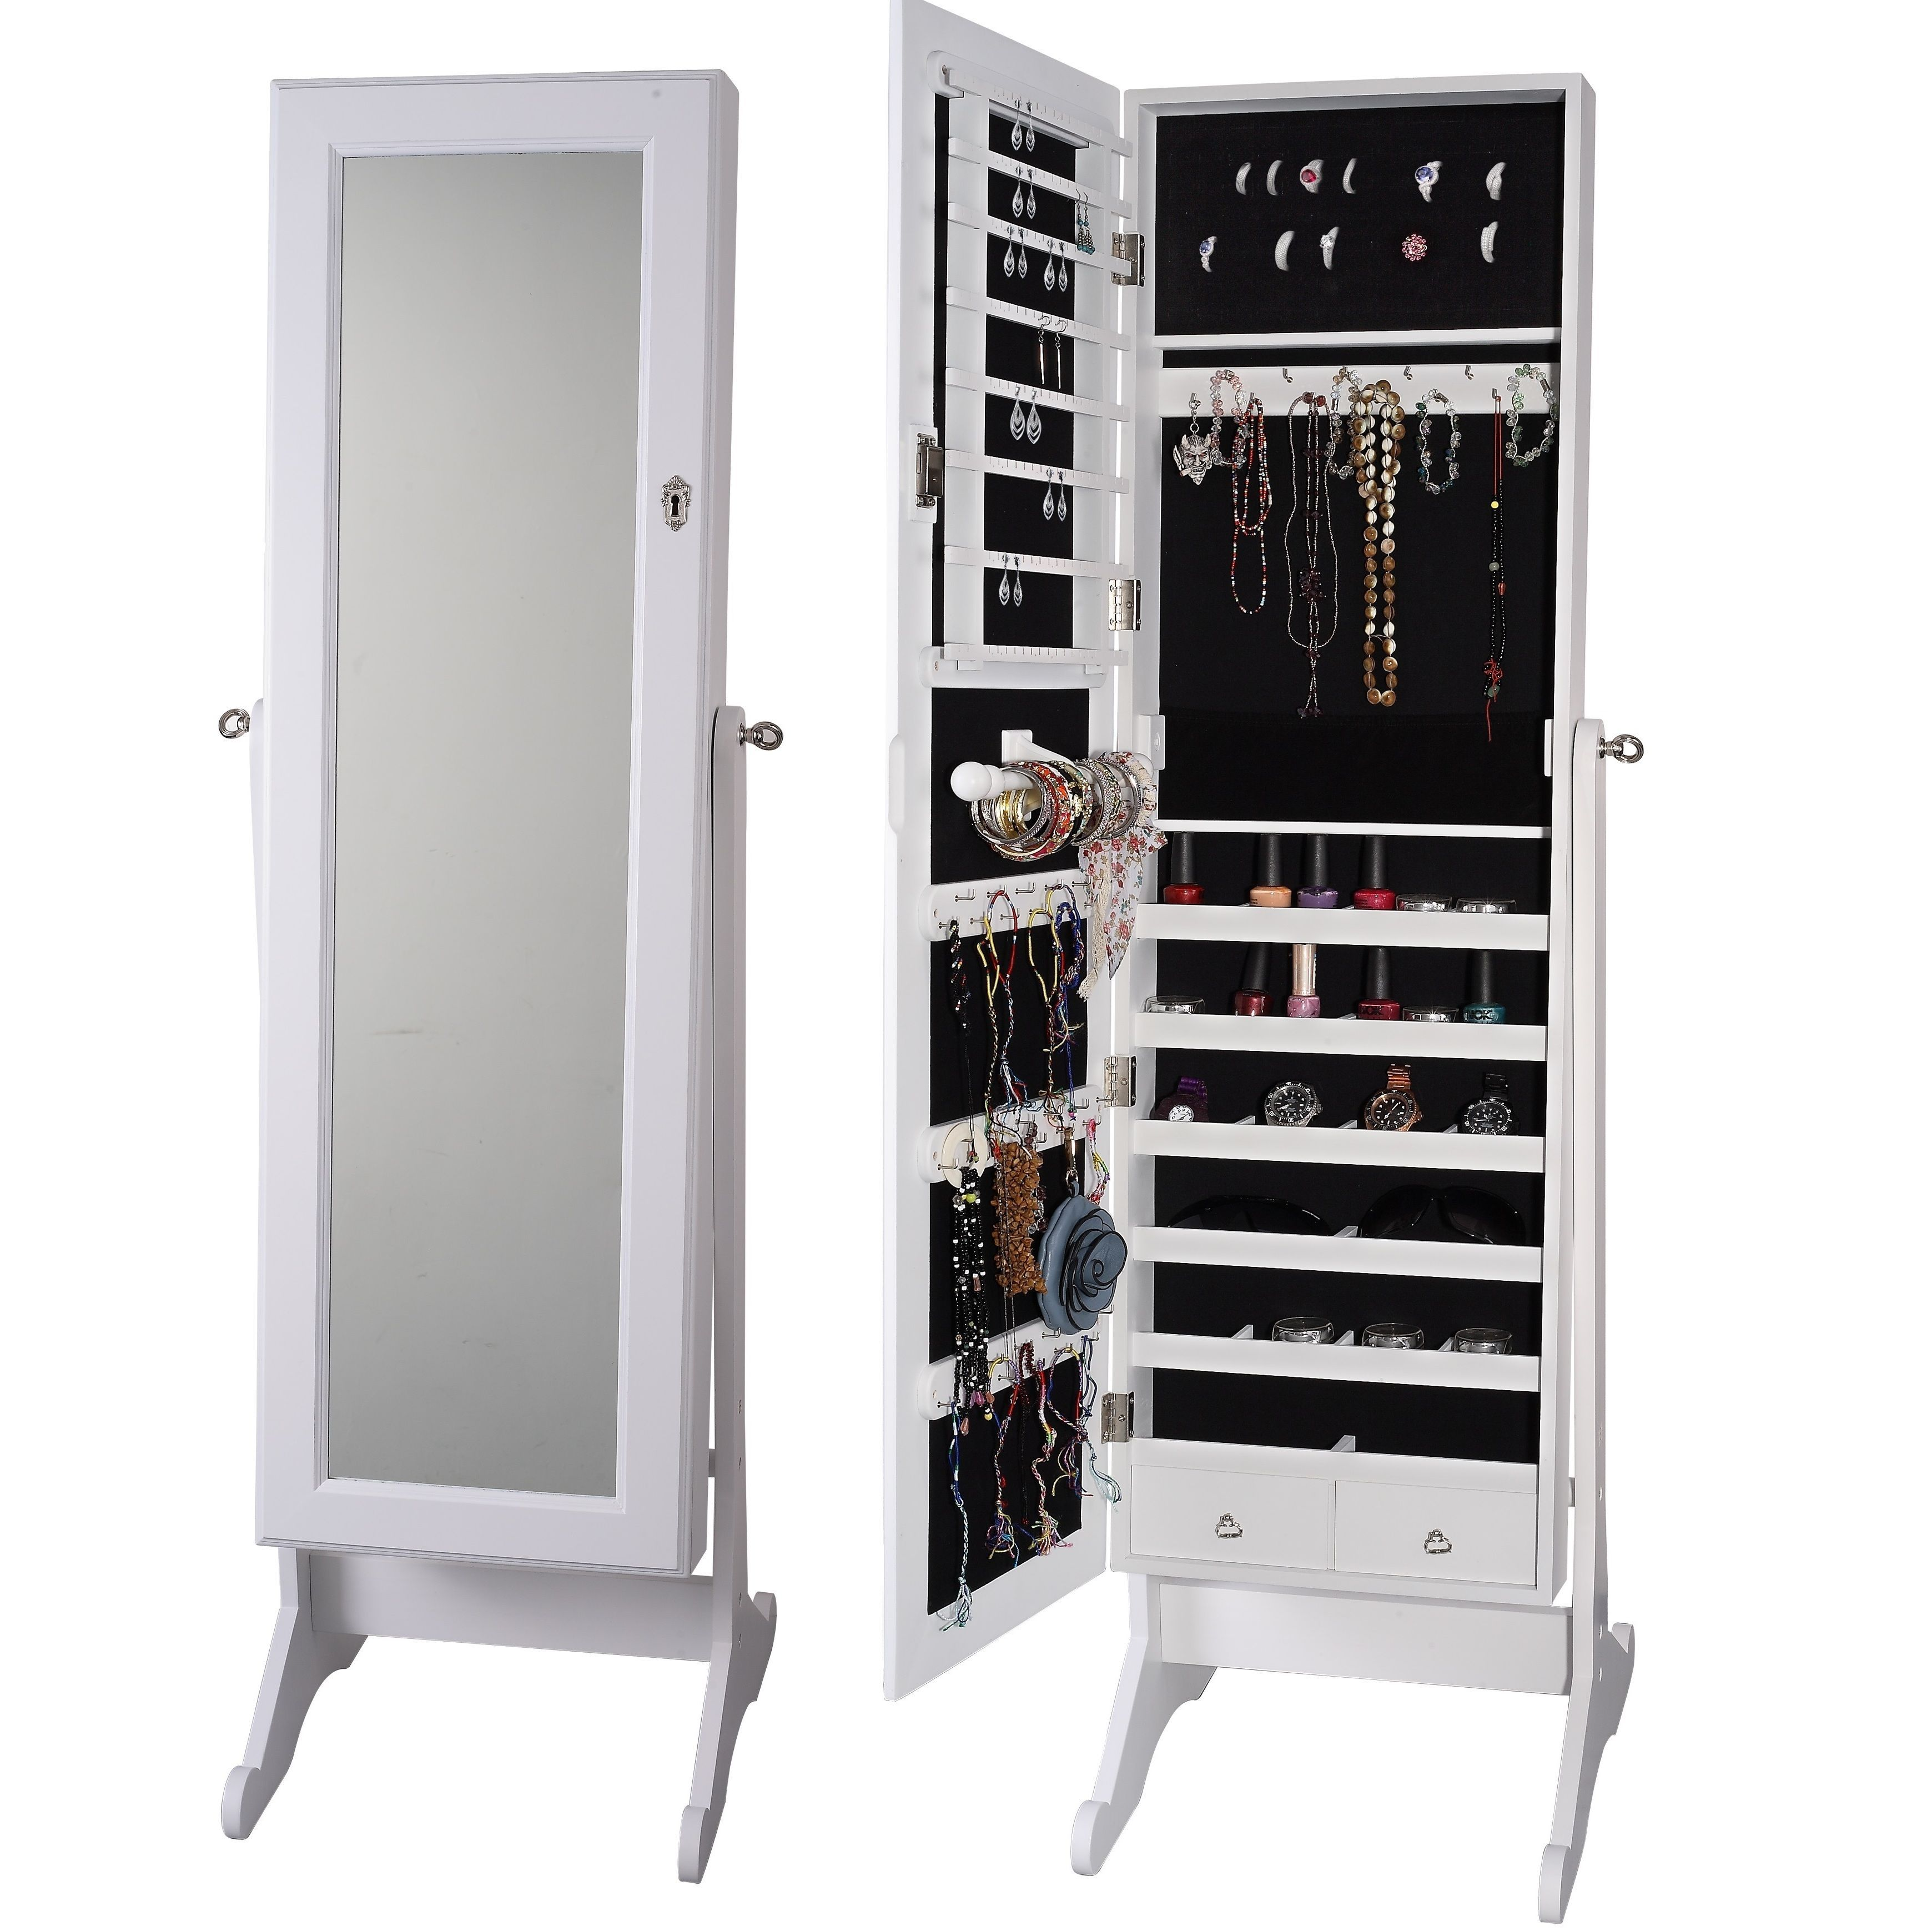 Store Your Rings Necklaces Bracelets Earrings Glasses Scarf Ties Valuable Articles Money And Mo Jewelry Cabinet Mirror Jewellery Cabinet Jewelry Mirror